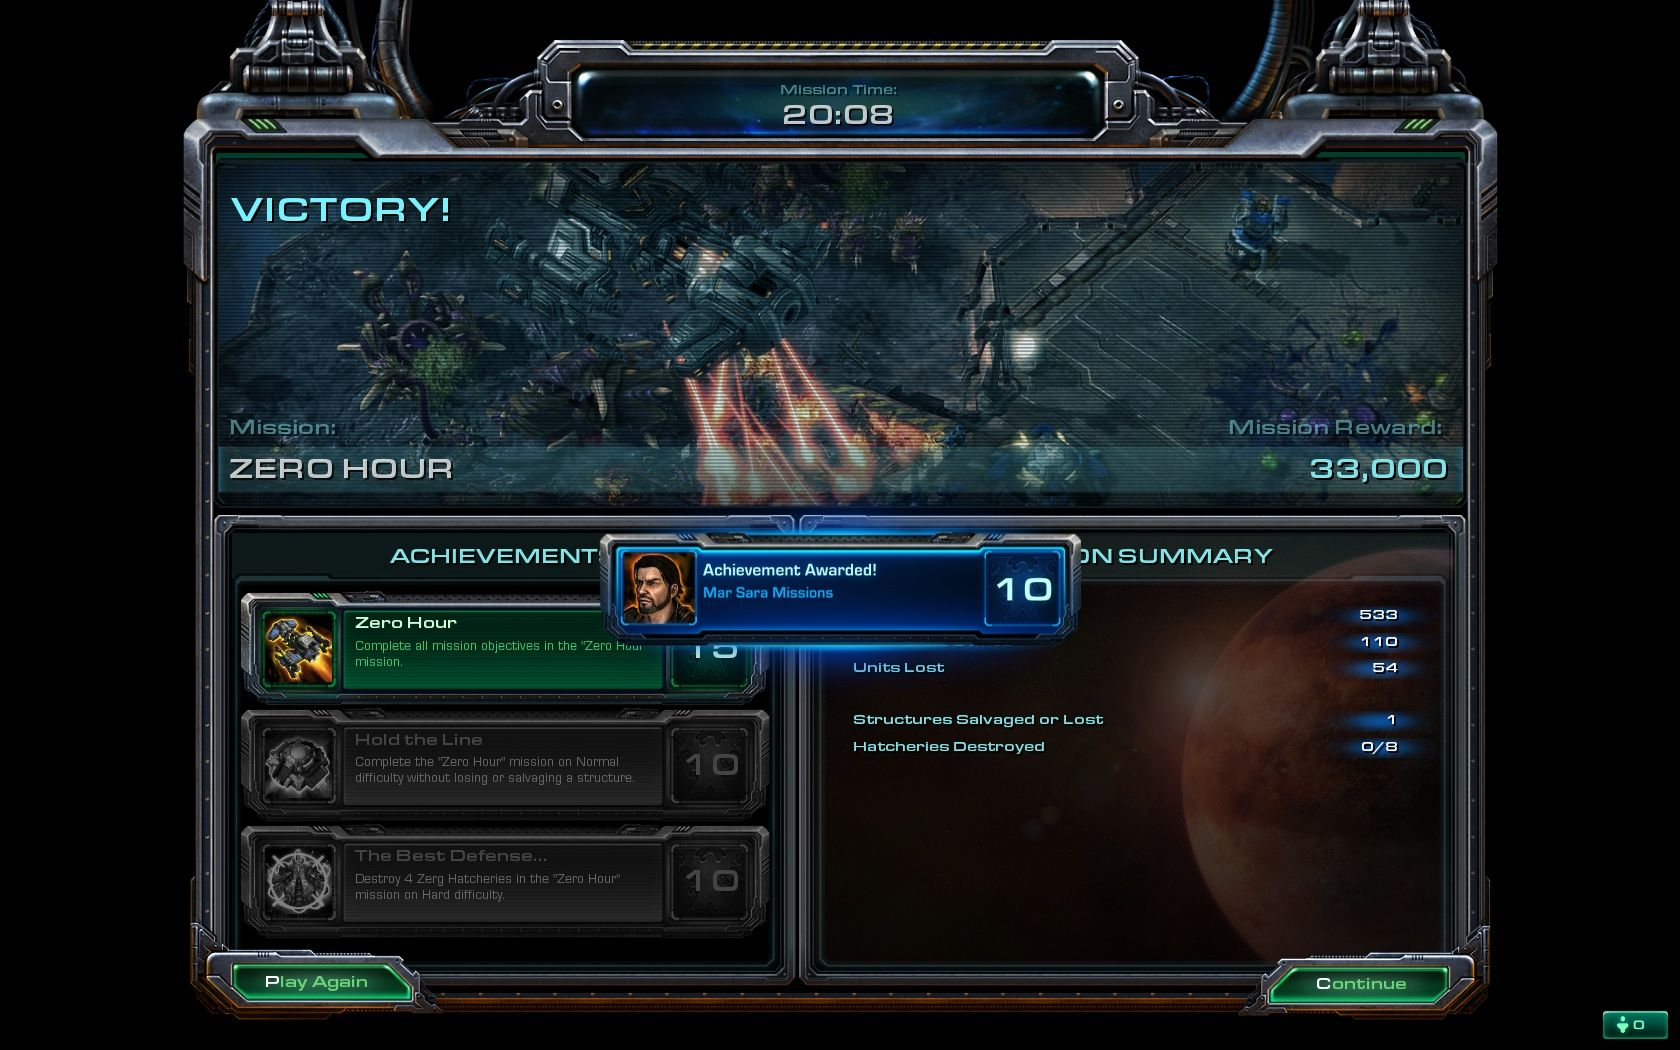 StarCraft II: Wings of Liberty Screenshots for Windows - MobyGames